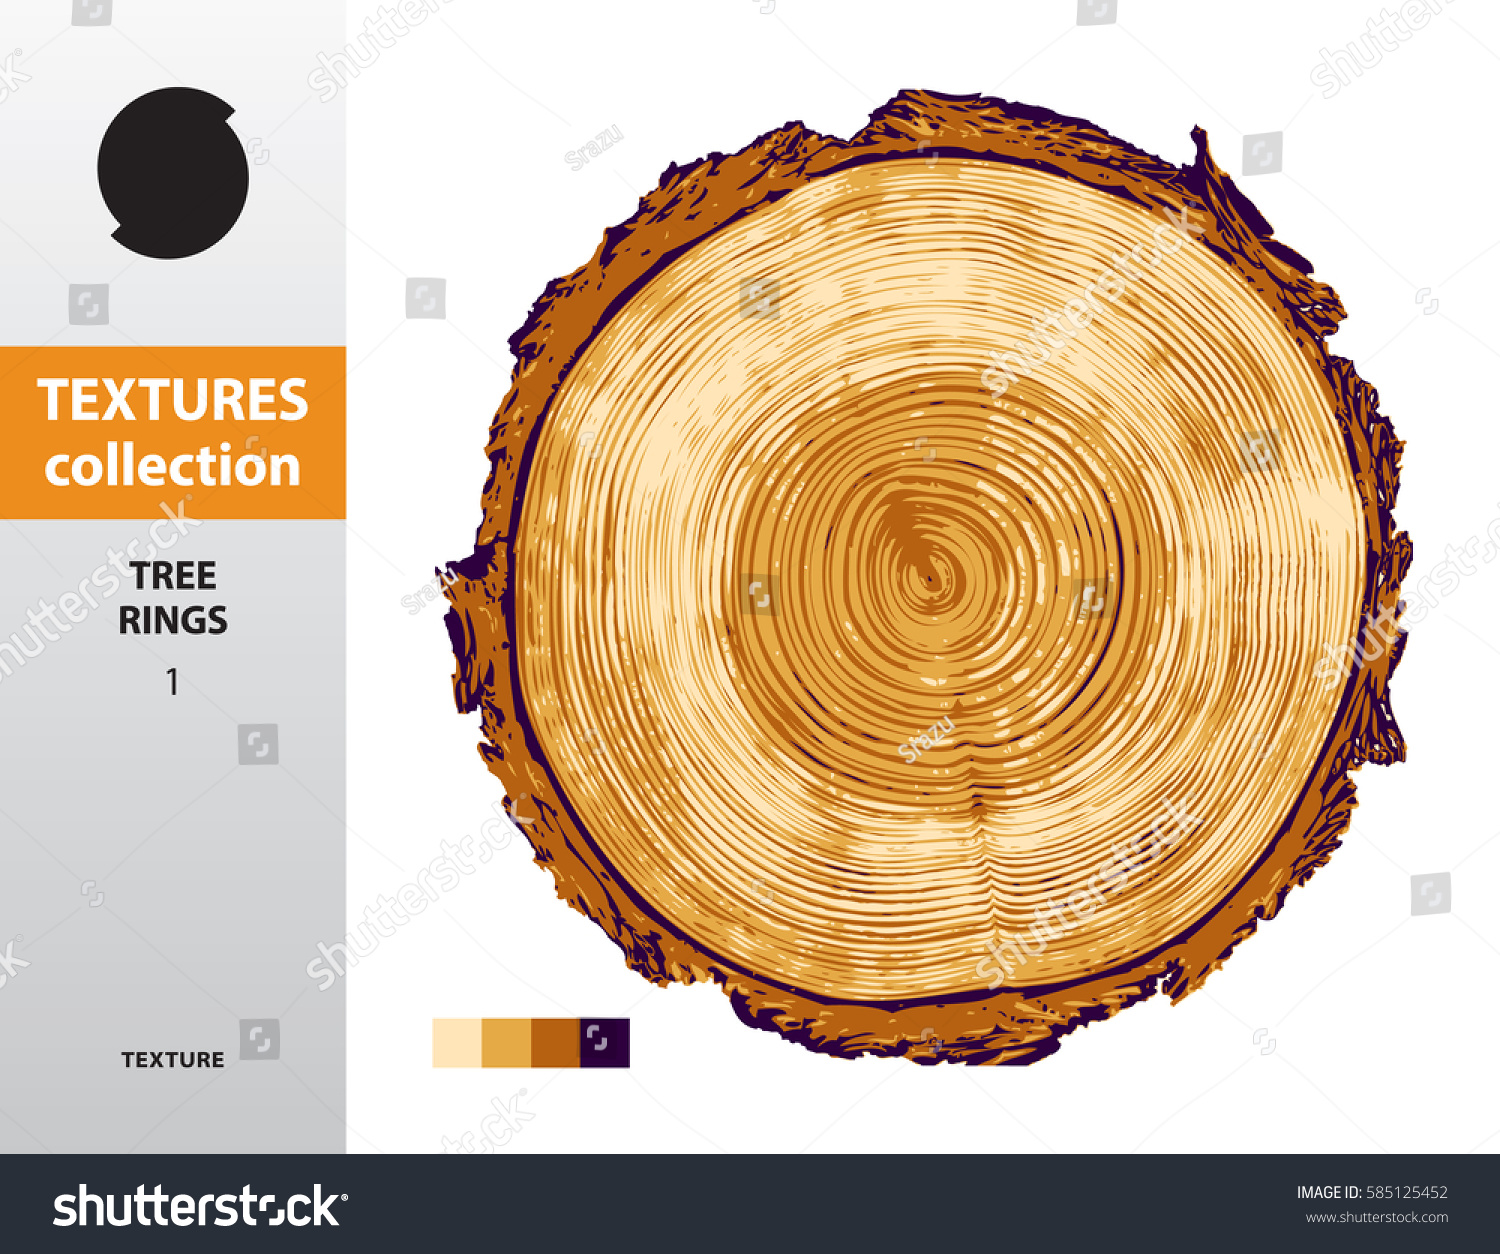 and dry of pacific is future photo standard tree can rings the david bukach see trees shutterstock environment lord in